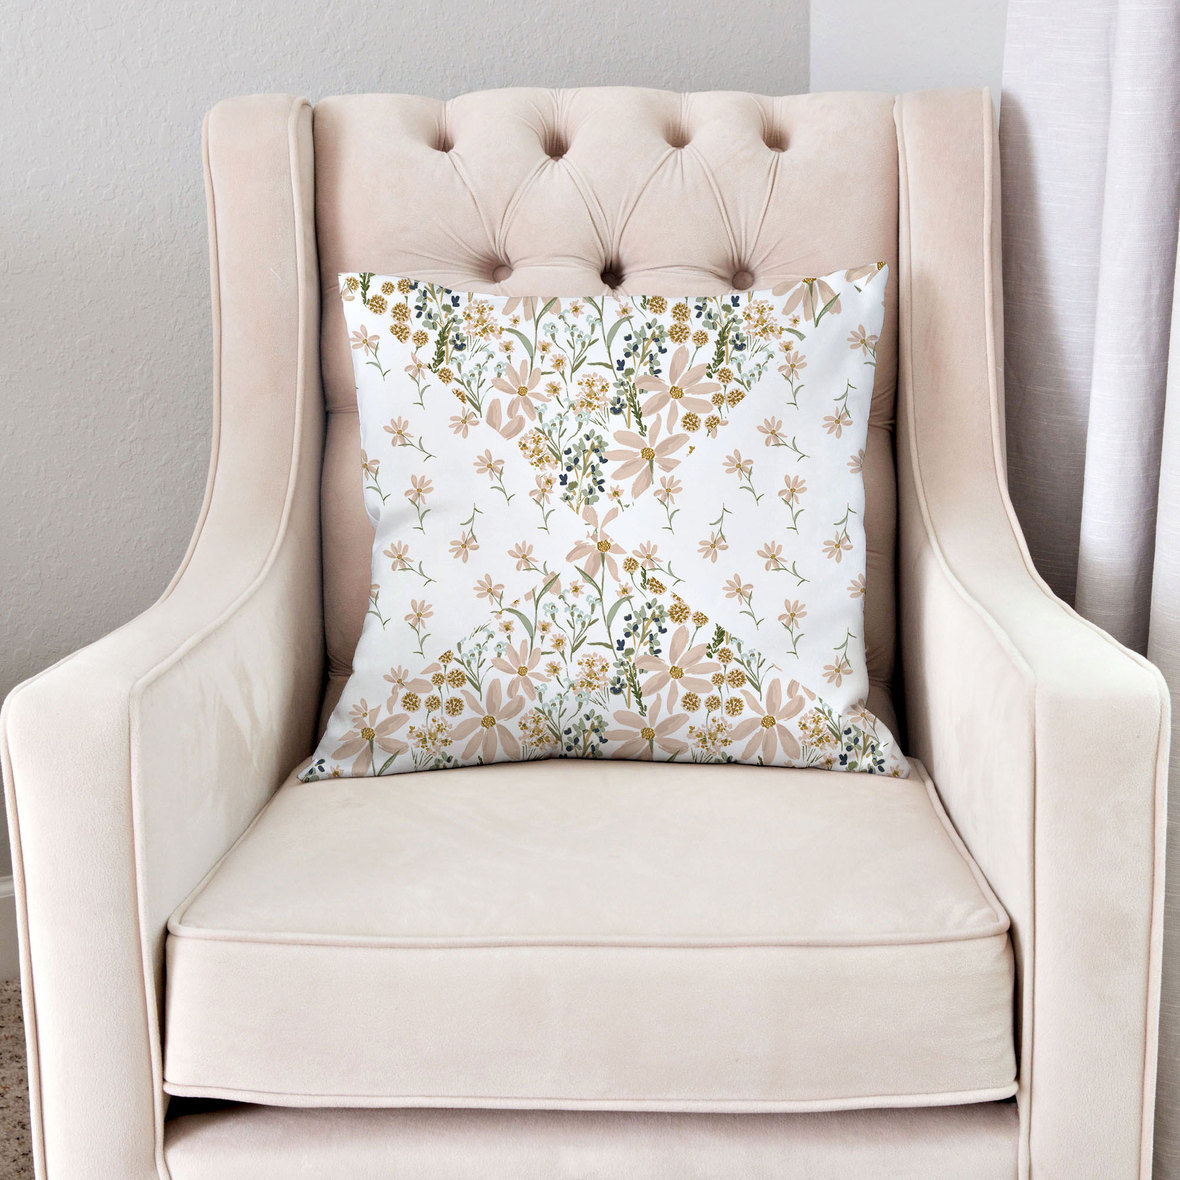 Large-Scale-Florals-on-Chair